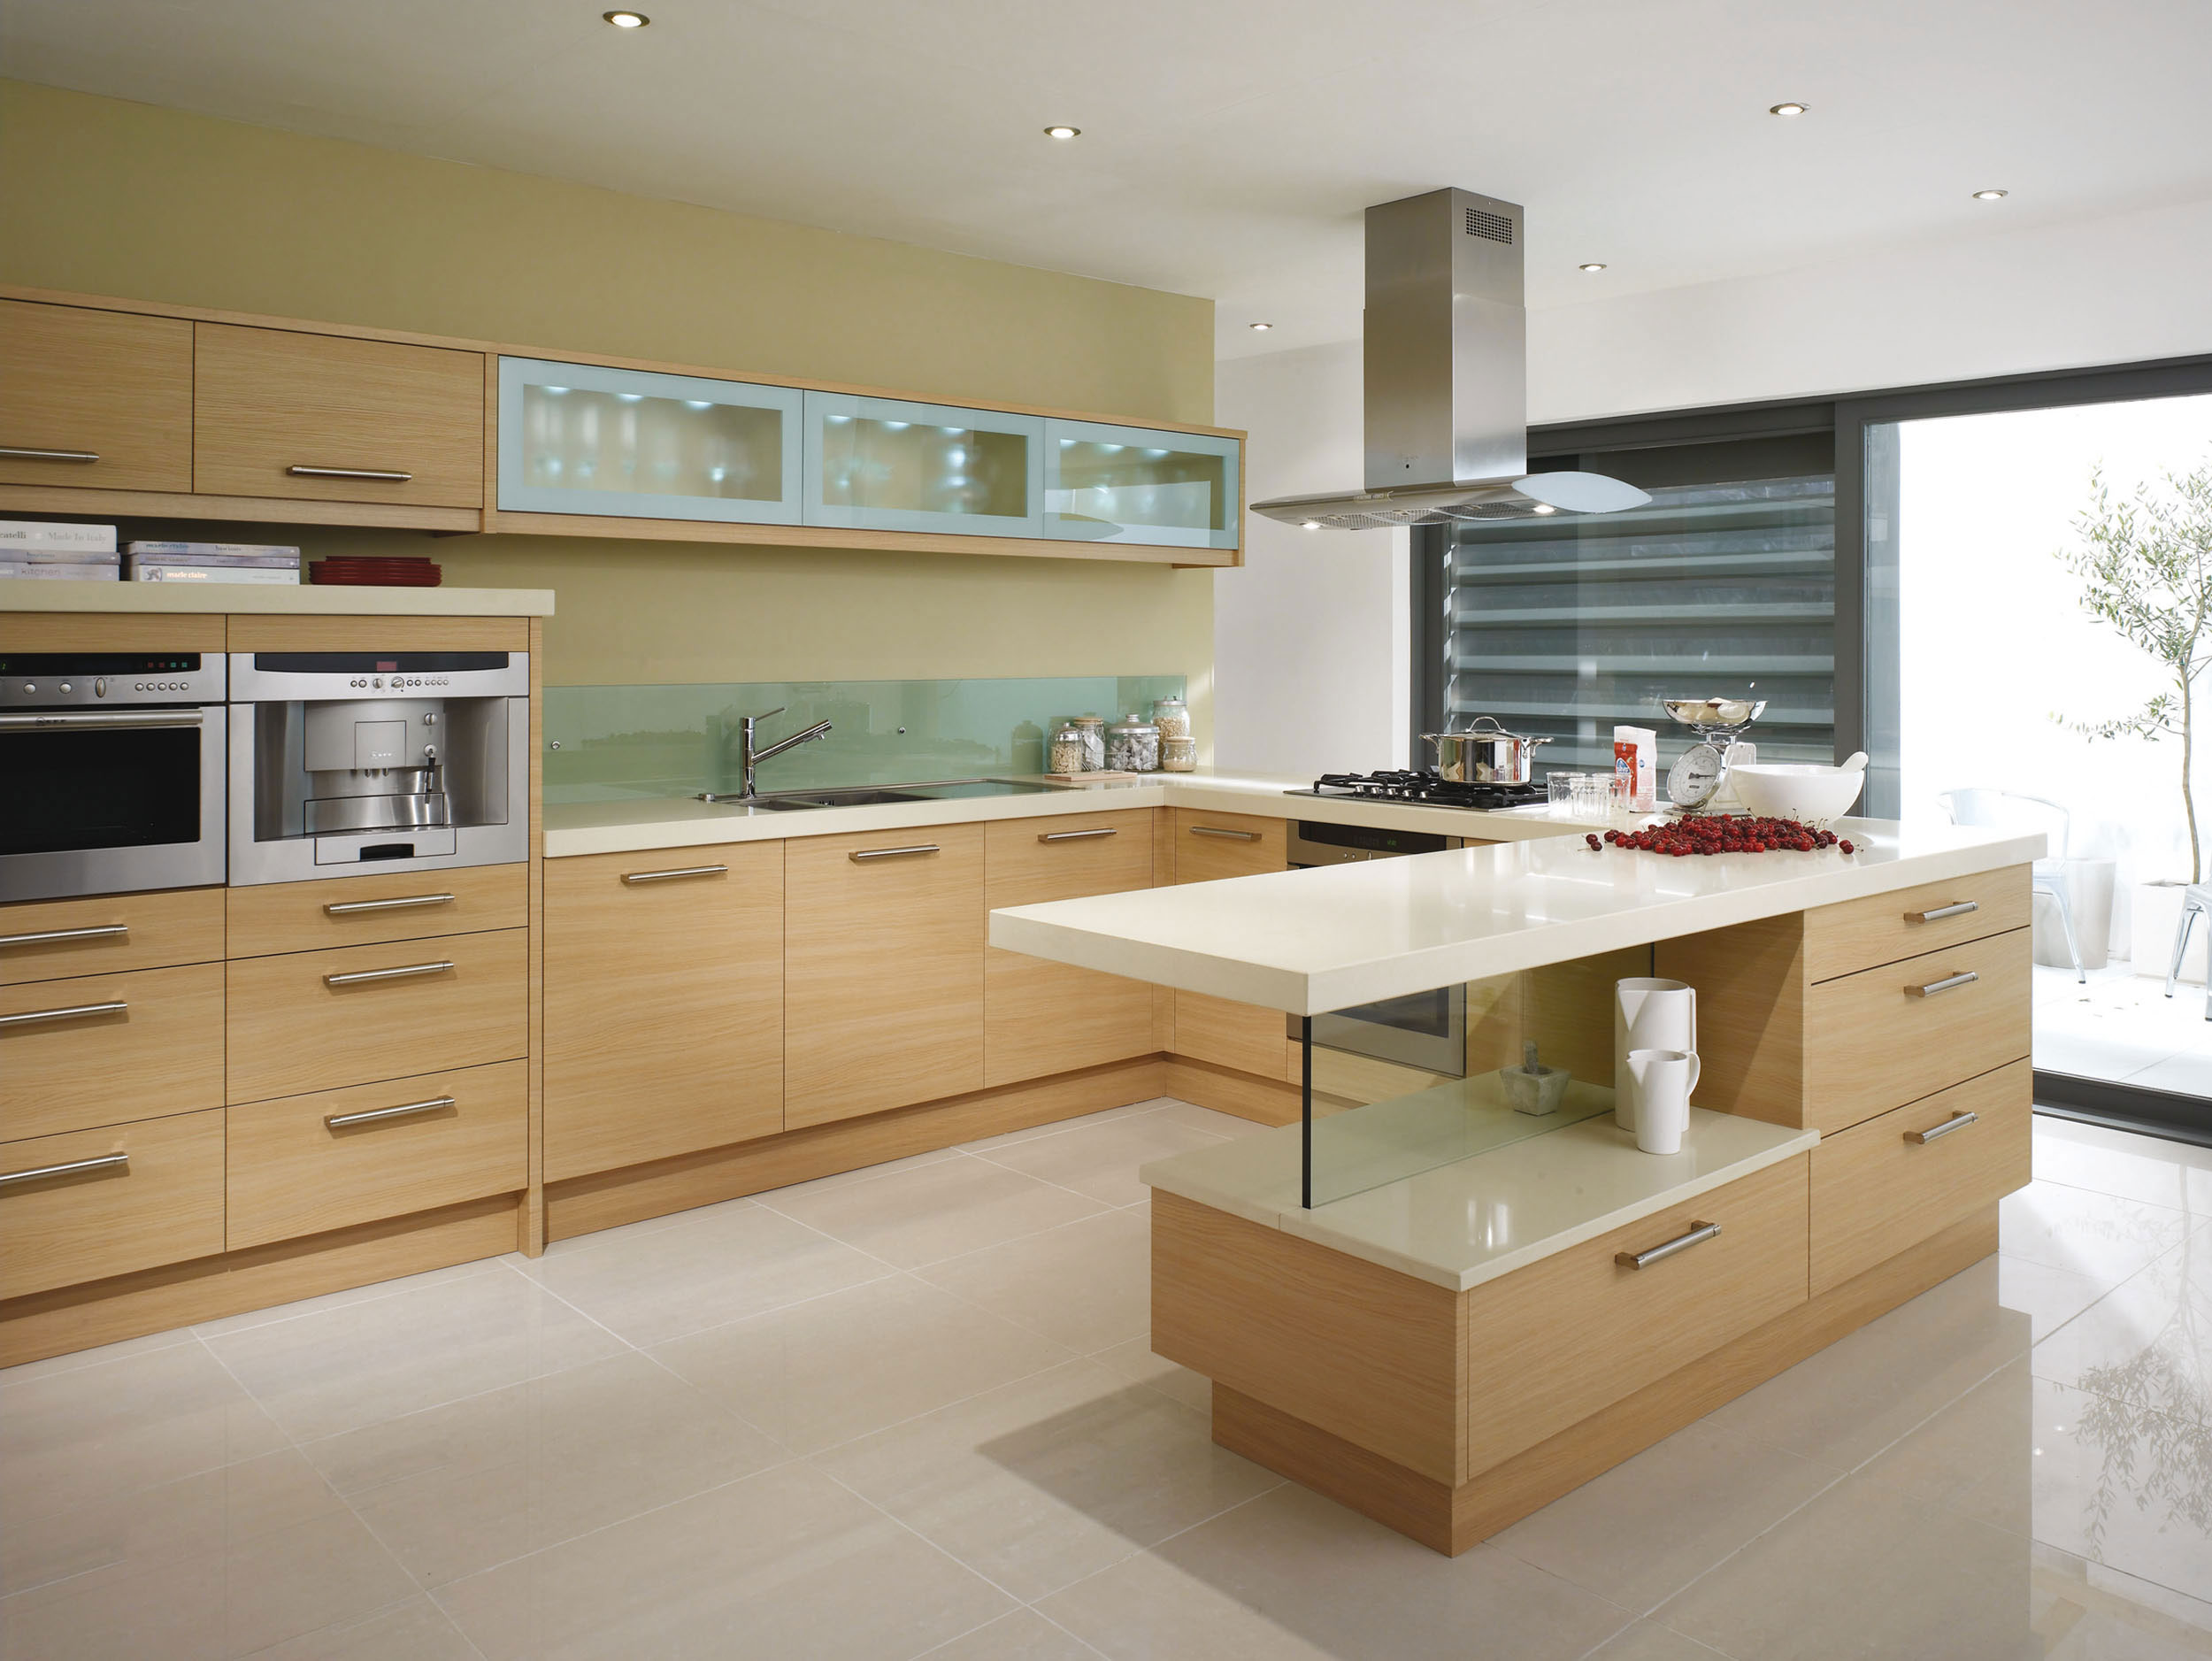 Fenton oak from eaton kitchen designs wolverhampton for Modern classic kitchen design ideas